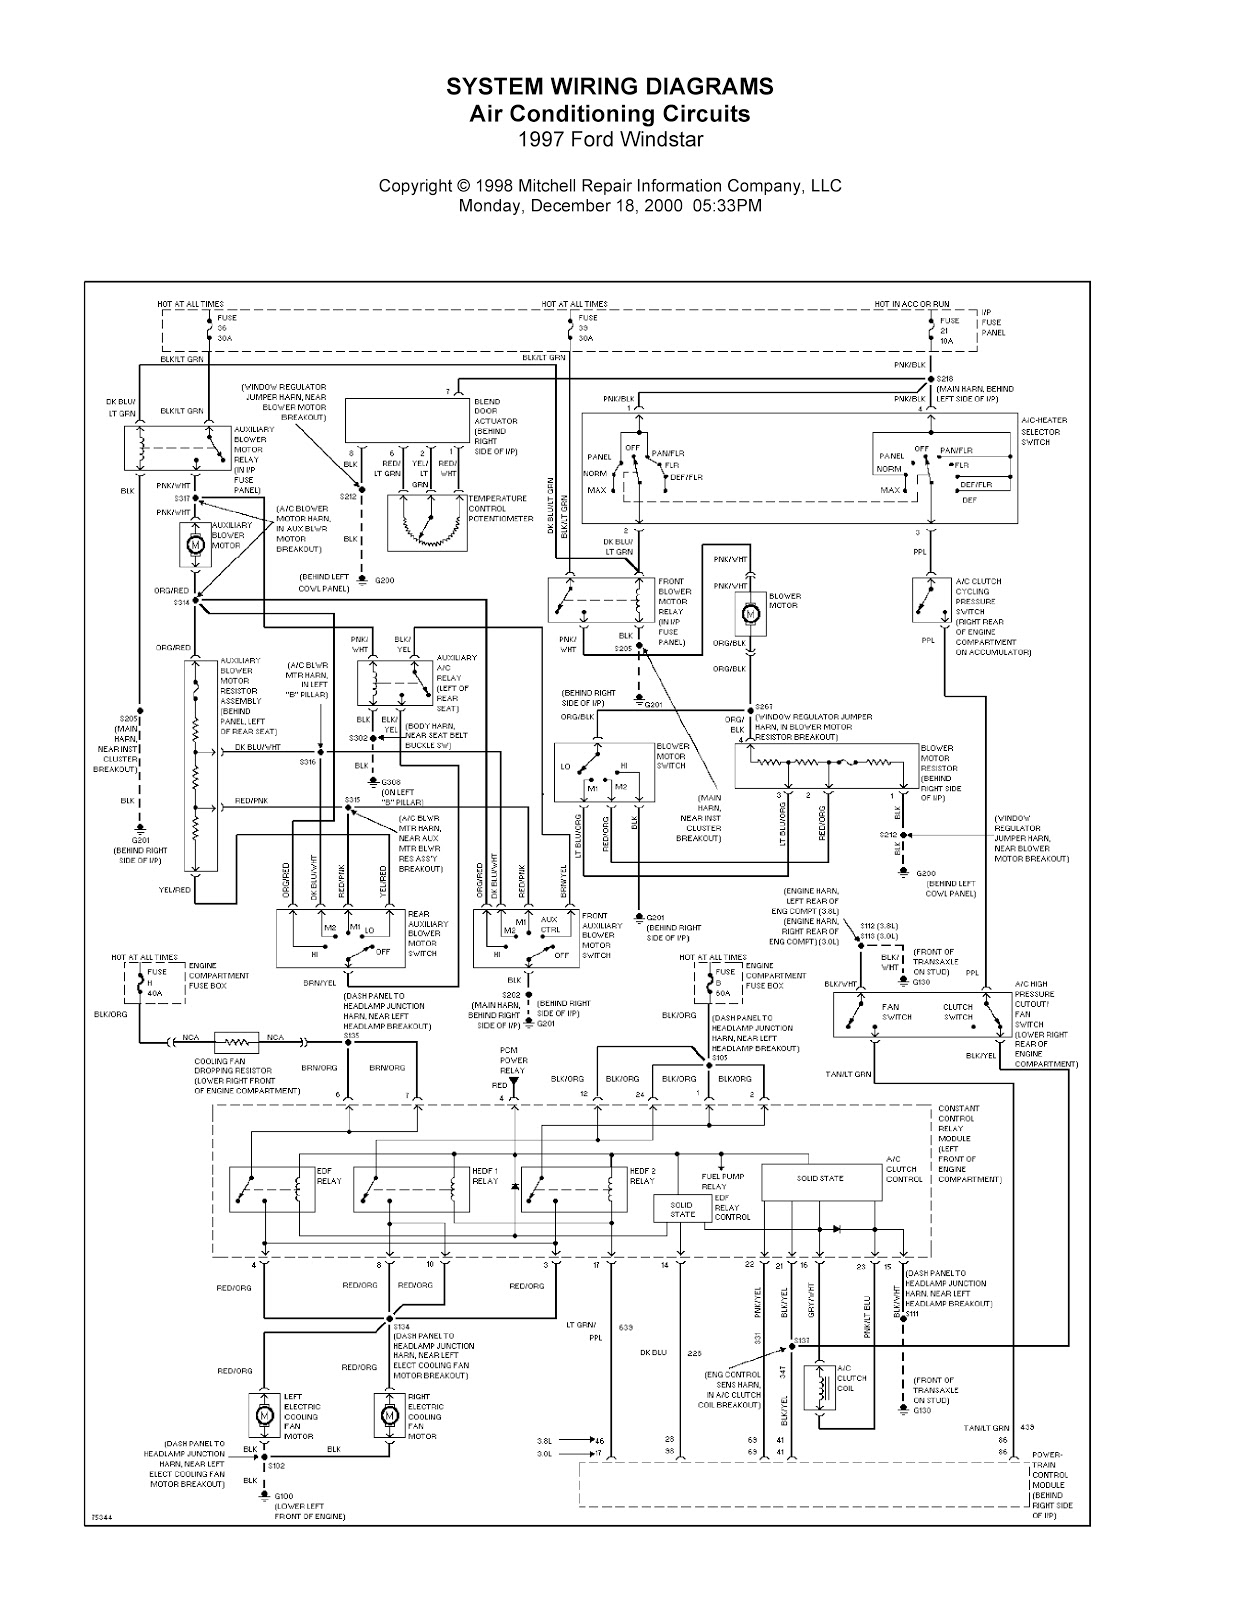 0001 2000 ford windstar wiring diagram ford windstar 3 8 engine diagram 2002 ford windstar fuse box diagram at panicattacktreatment.co